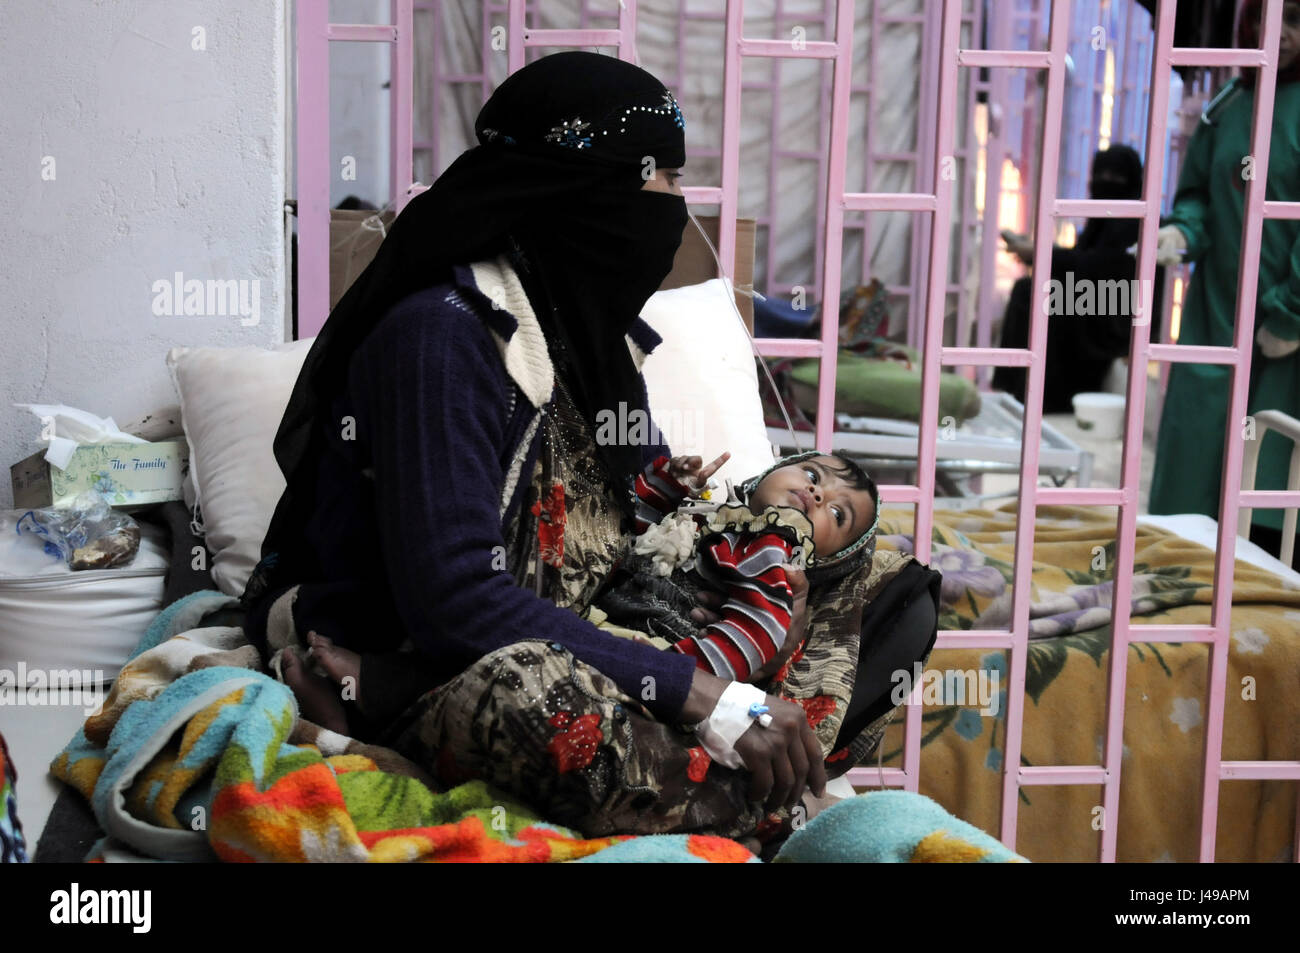 Sanaa, Yemen. 10th May, 2017. A woman holds her baby who is suffering from cholera in a hospital in Sanaa, Yemen, - Stock Image